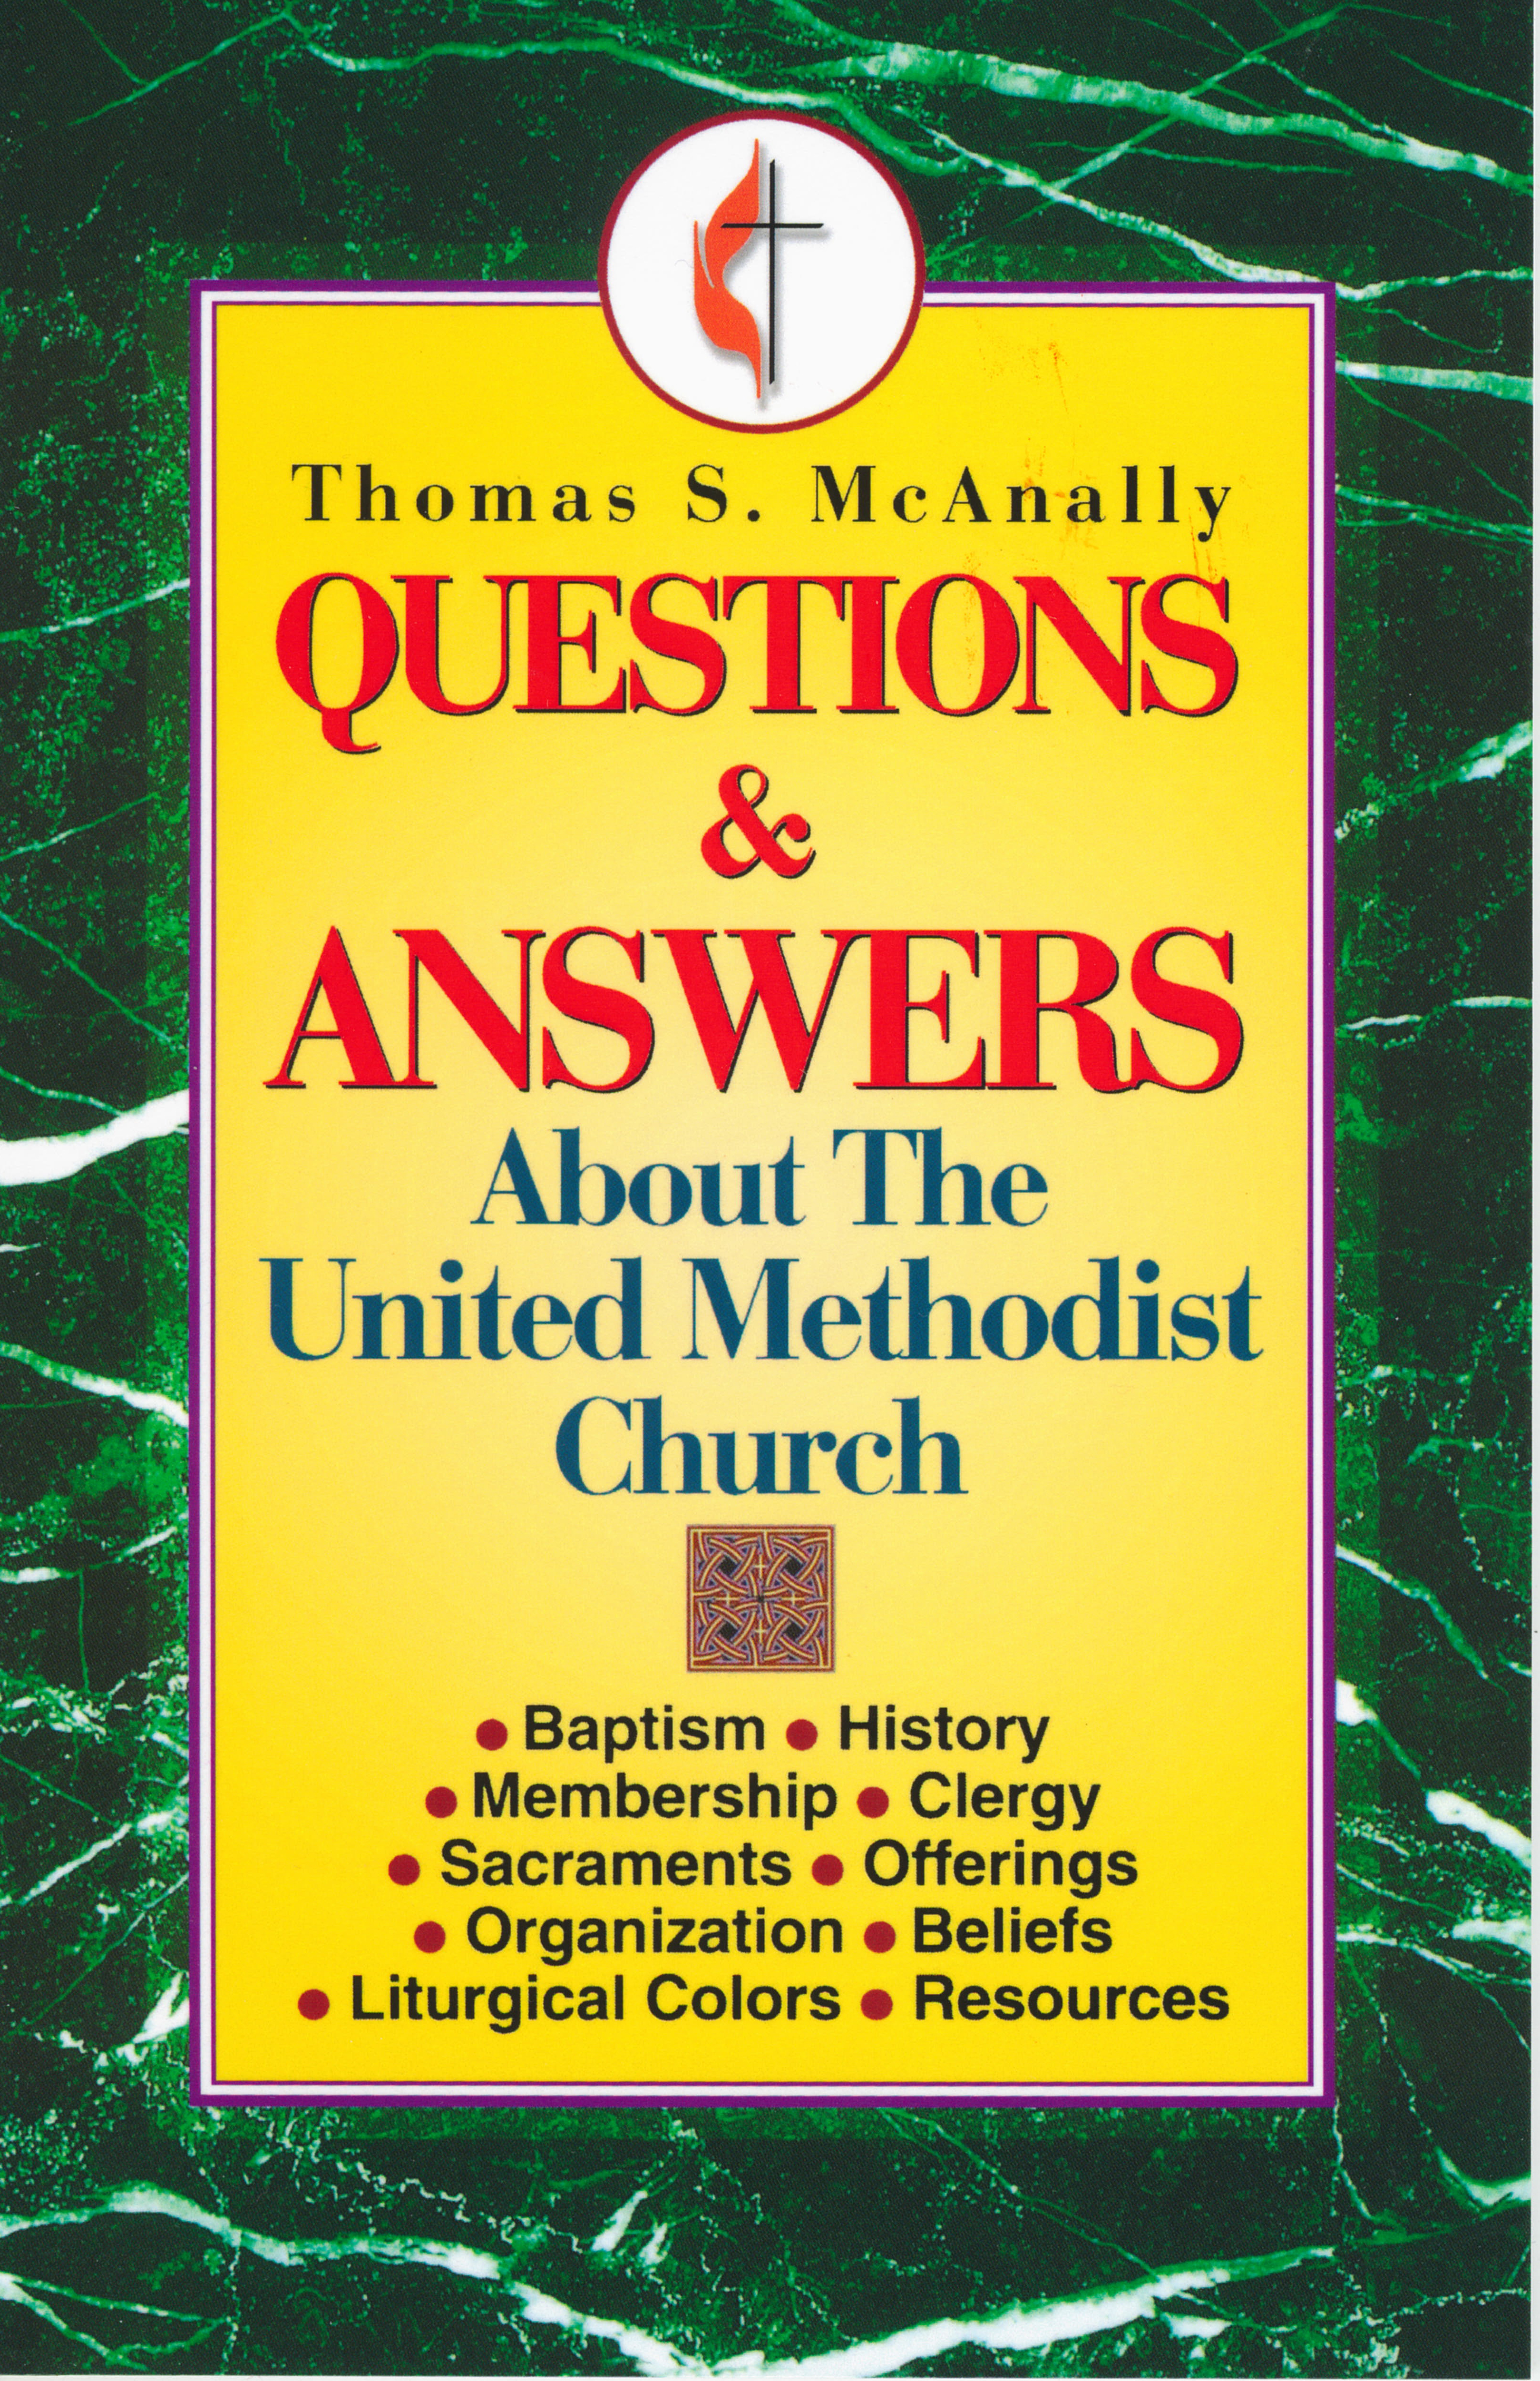 Questions & Answers About The United Methodist Church 108-9780687016709